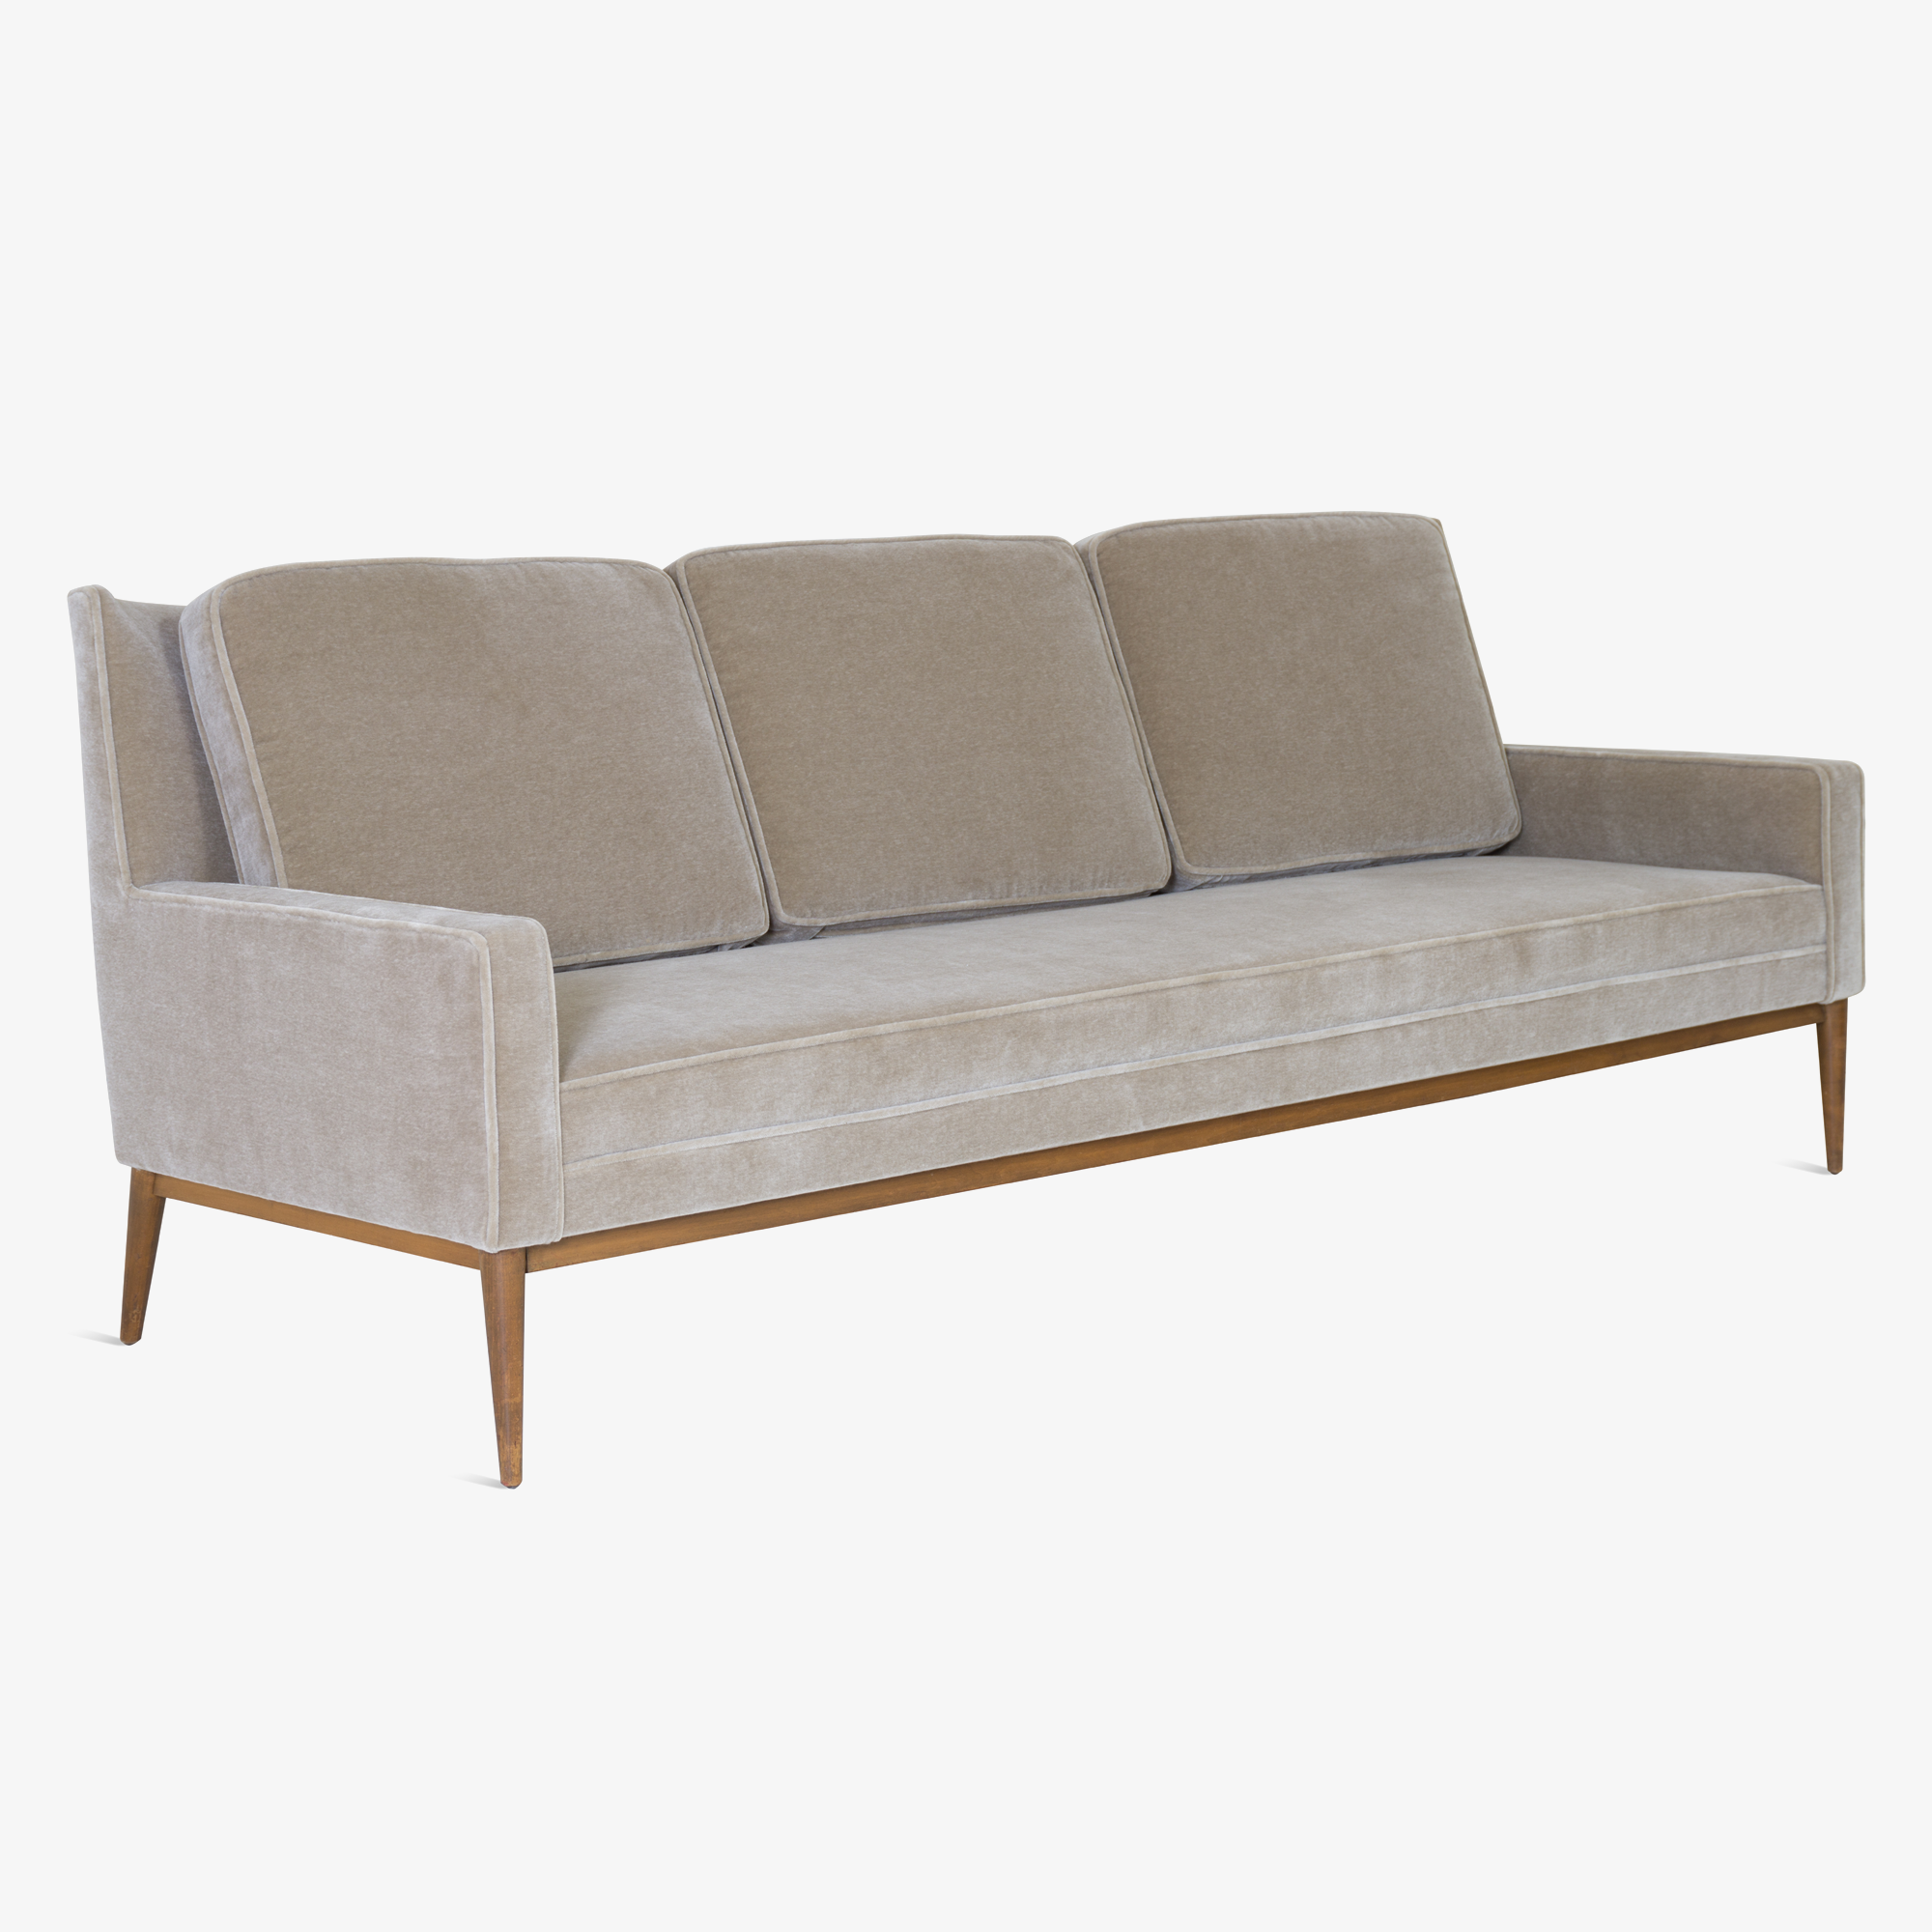 3-Seat %22Model 1307%22 Sofa in Mohair by Paul McCobb for Directional4.png